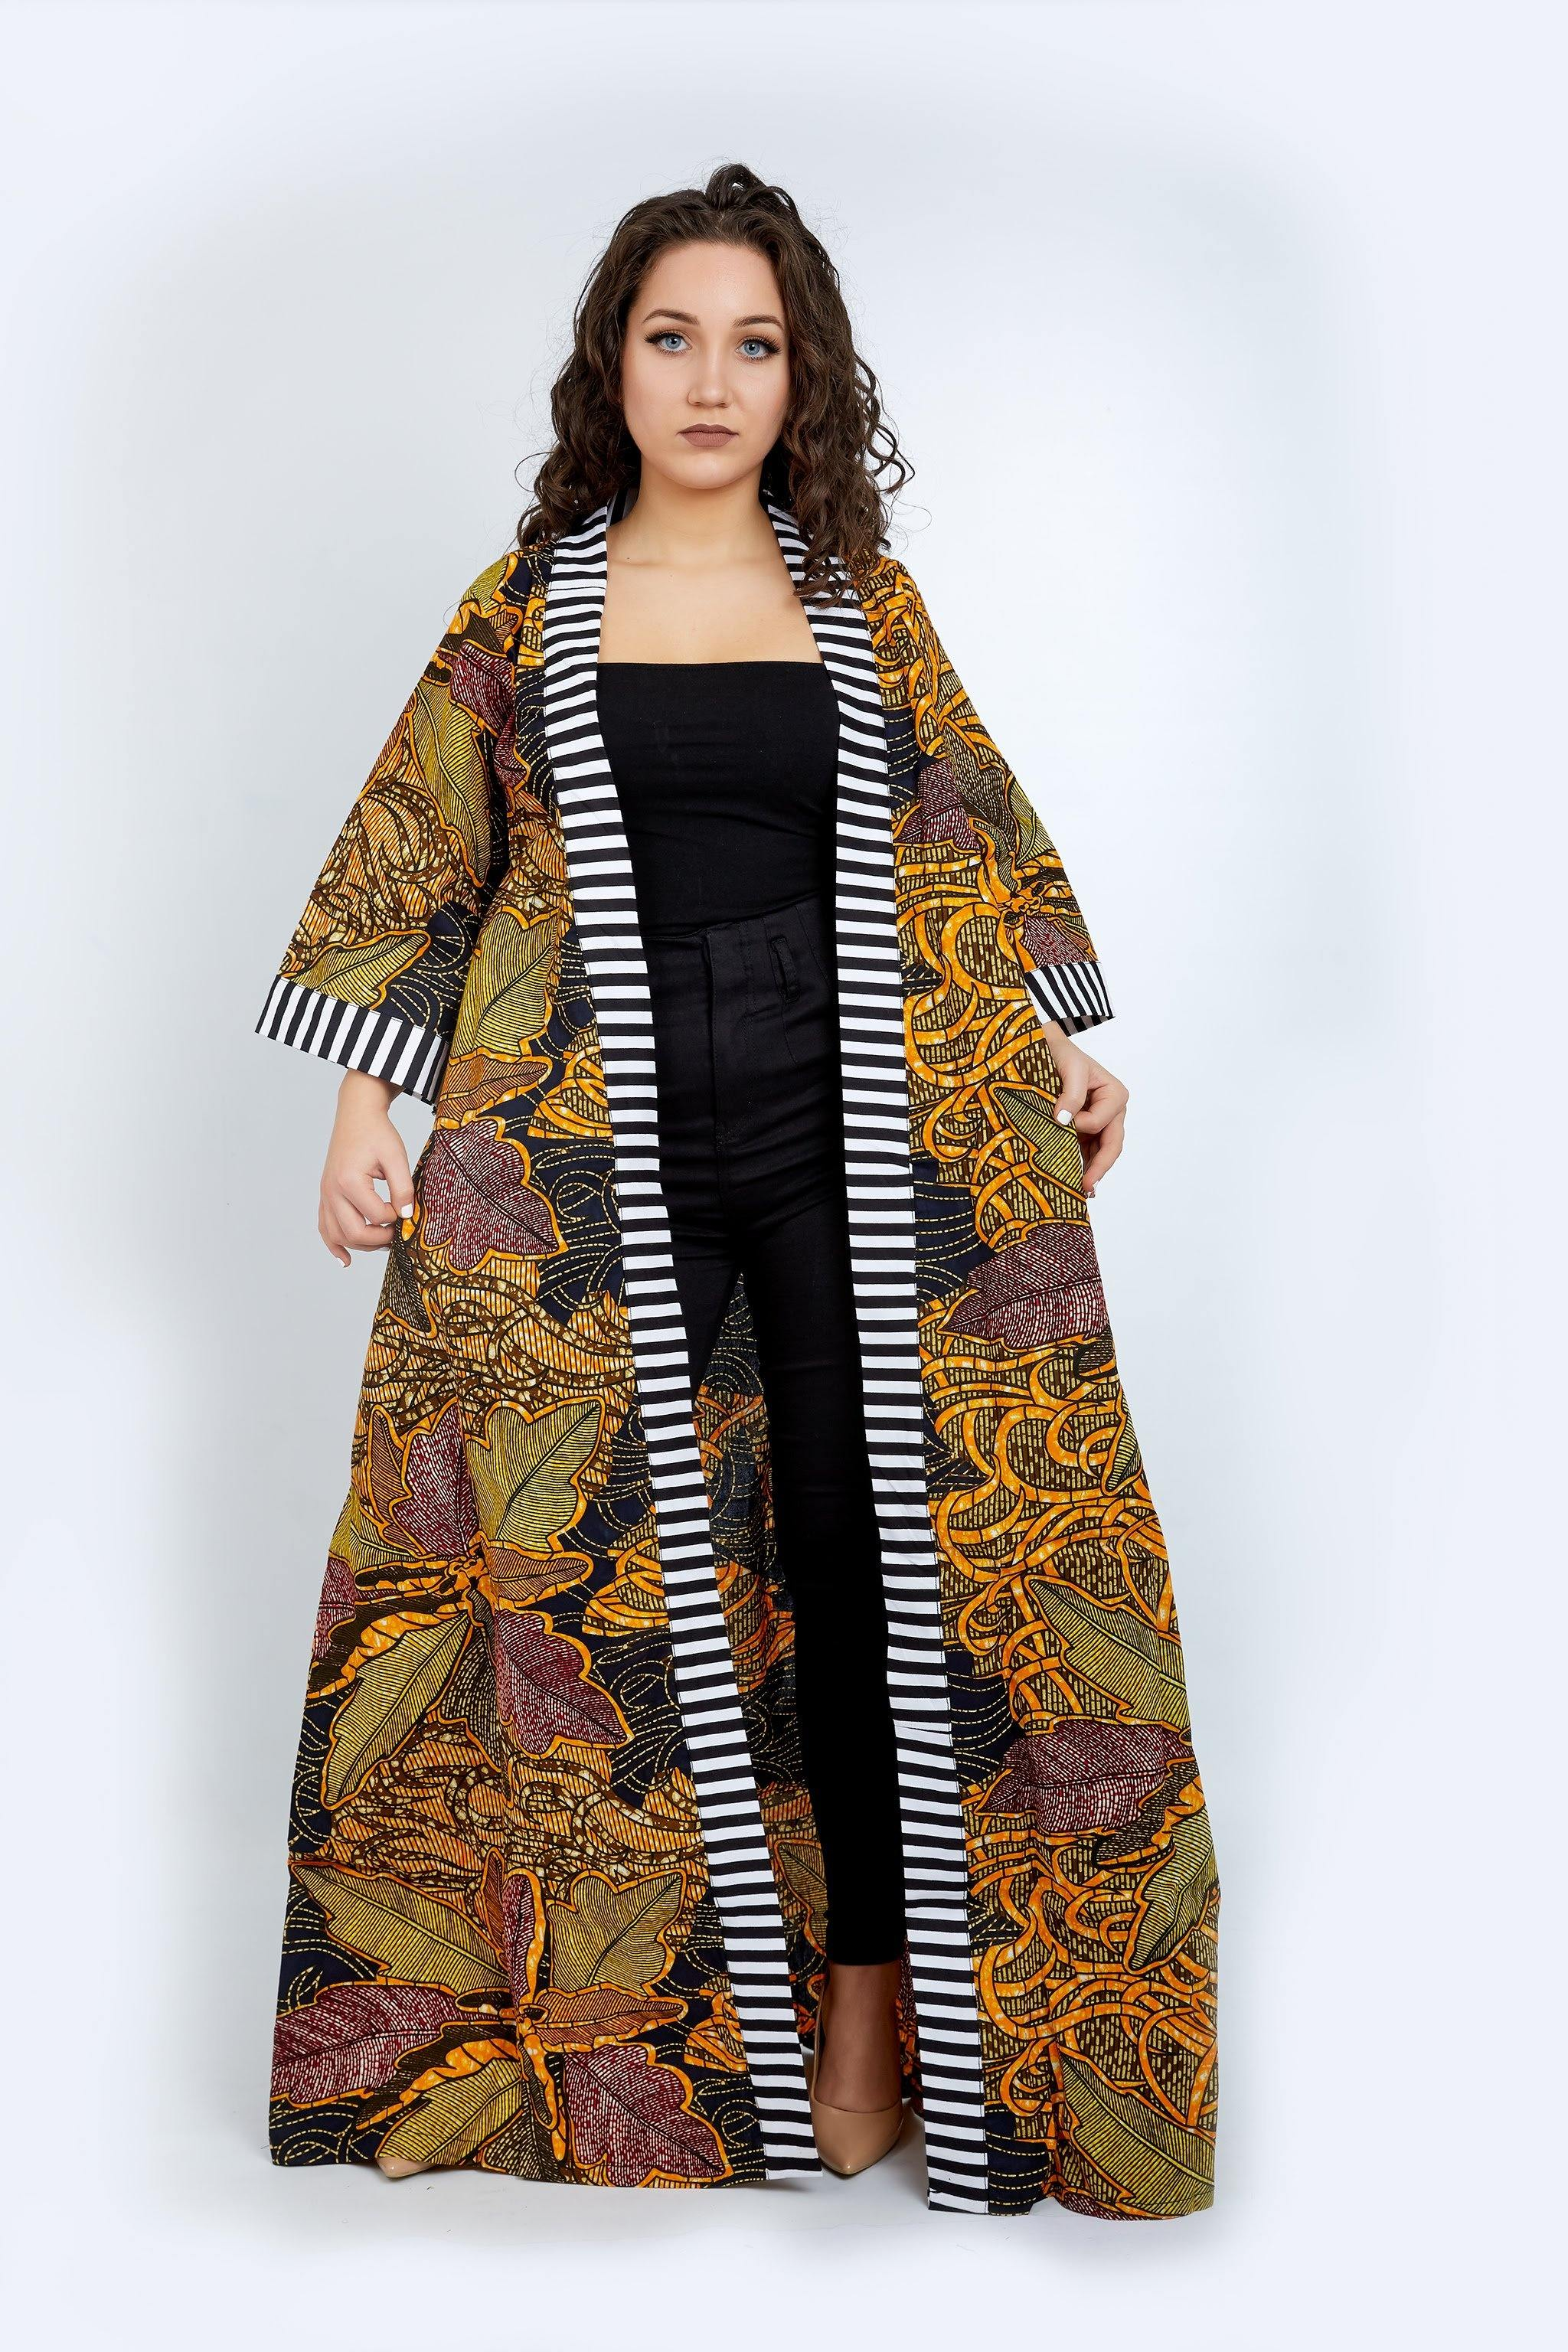 WAA - Bauchi Kimono with Contrast Monochrome Taping - waafashion